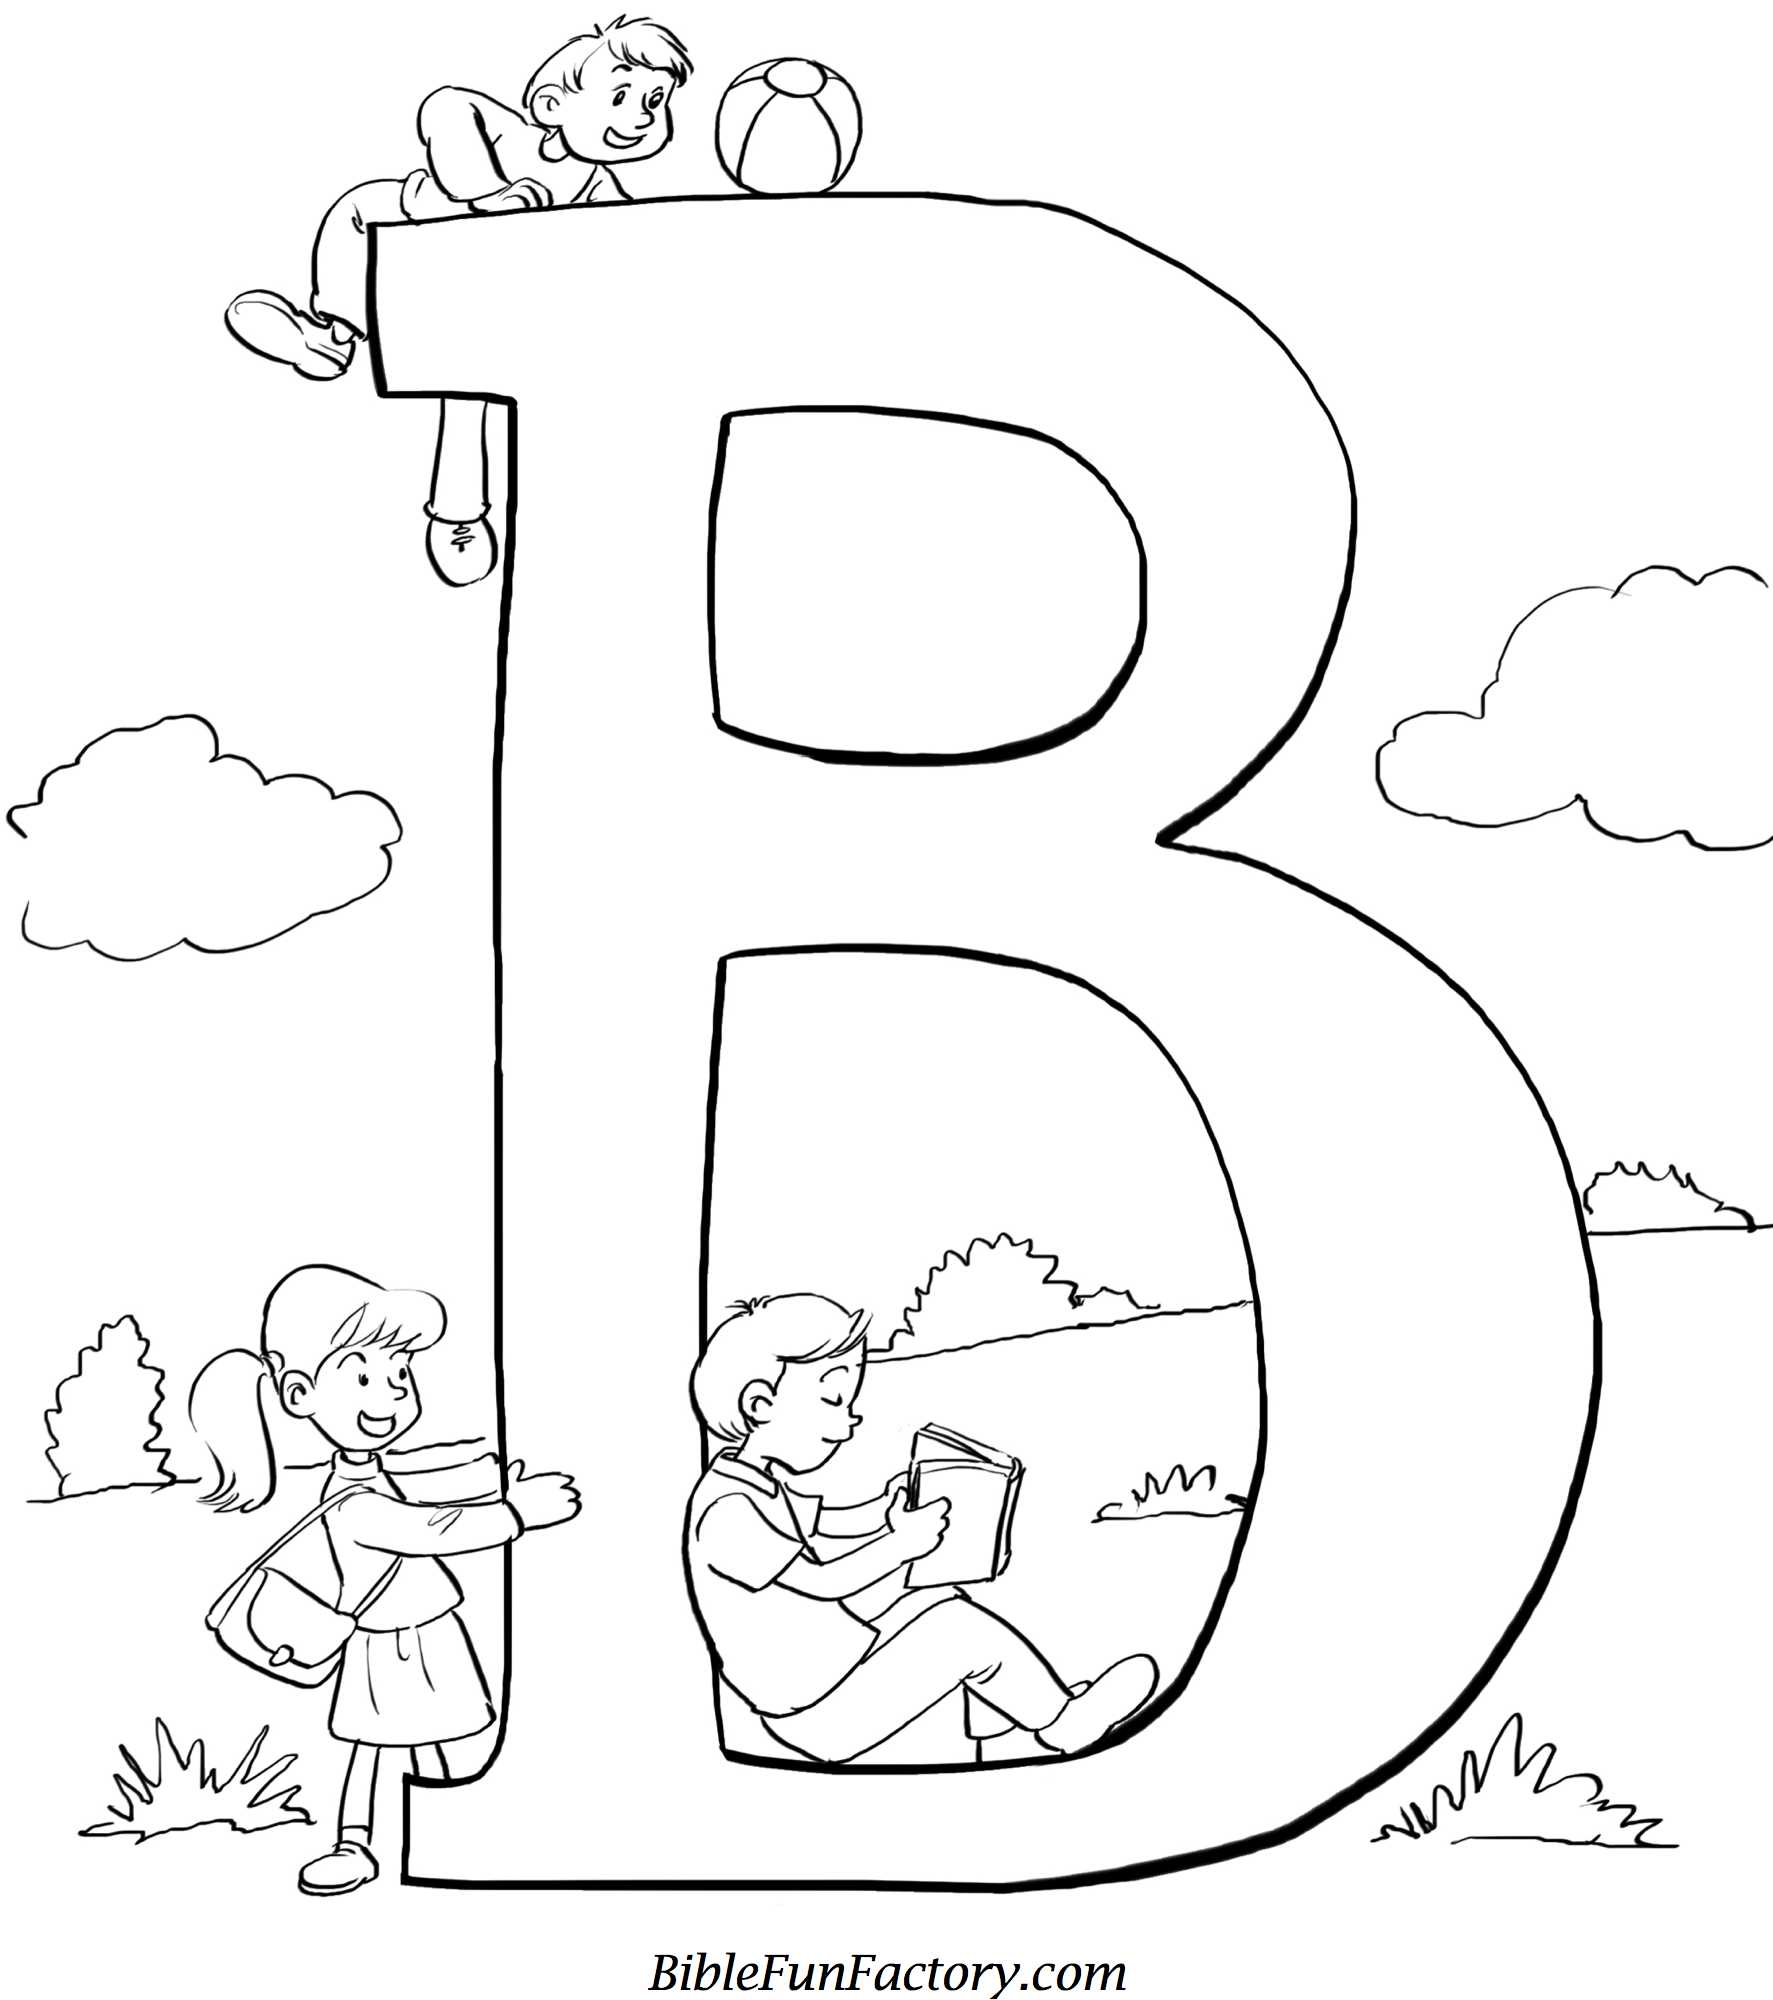 13 Best Images of Bible Worksheets For Preschoolers ... | bible coloring pages for preschoolers